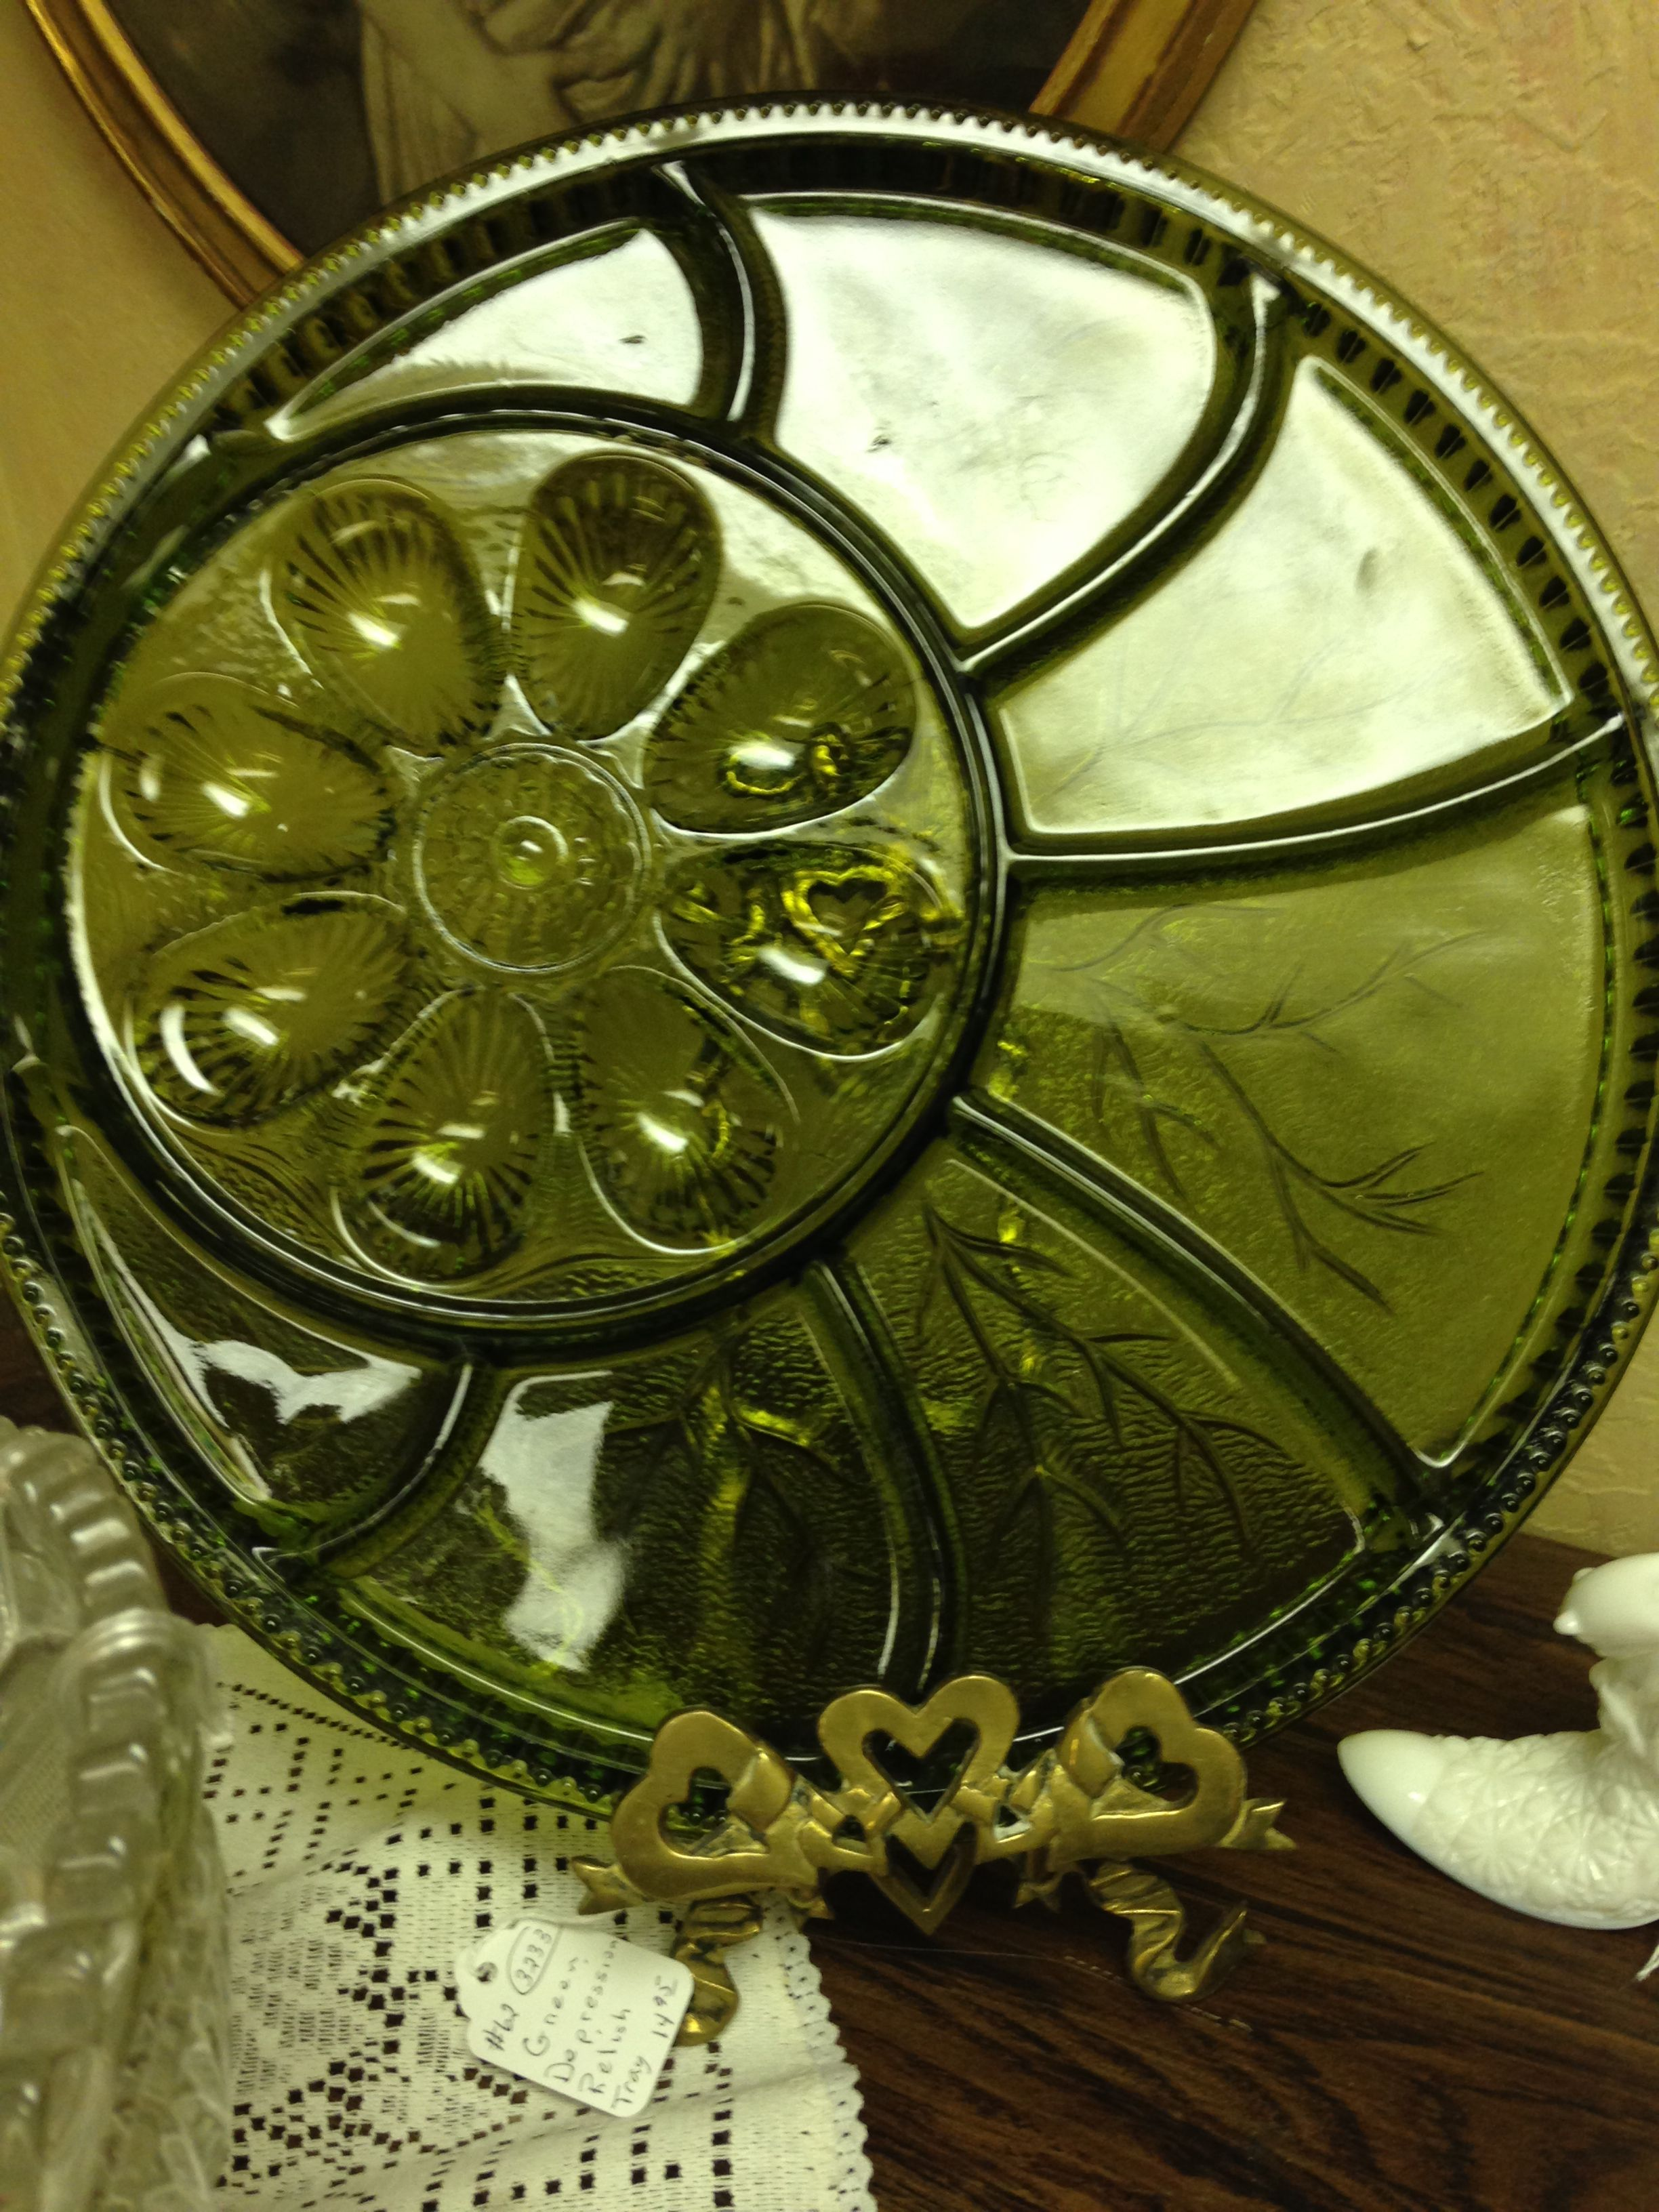 Green glass egg plate at an antique store in Norman, Oklahoma. (I own one of these).